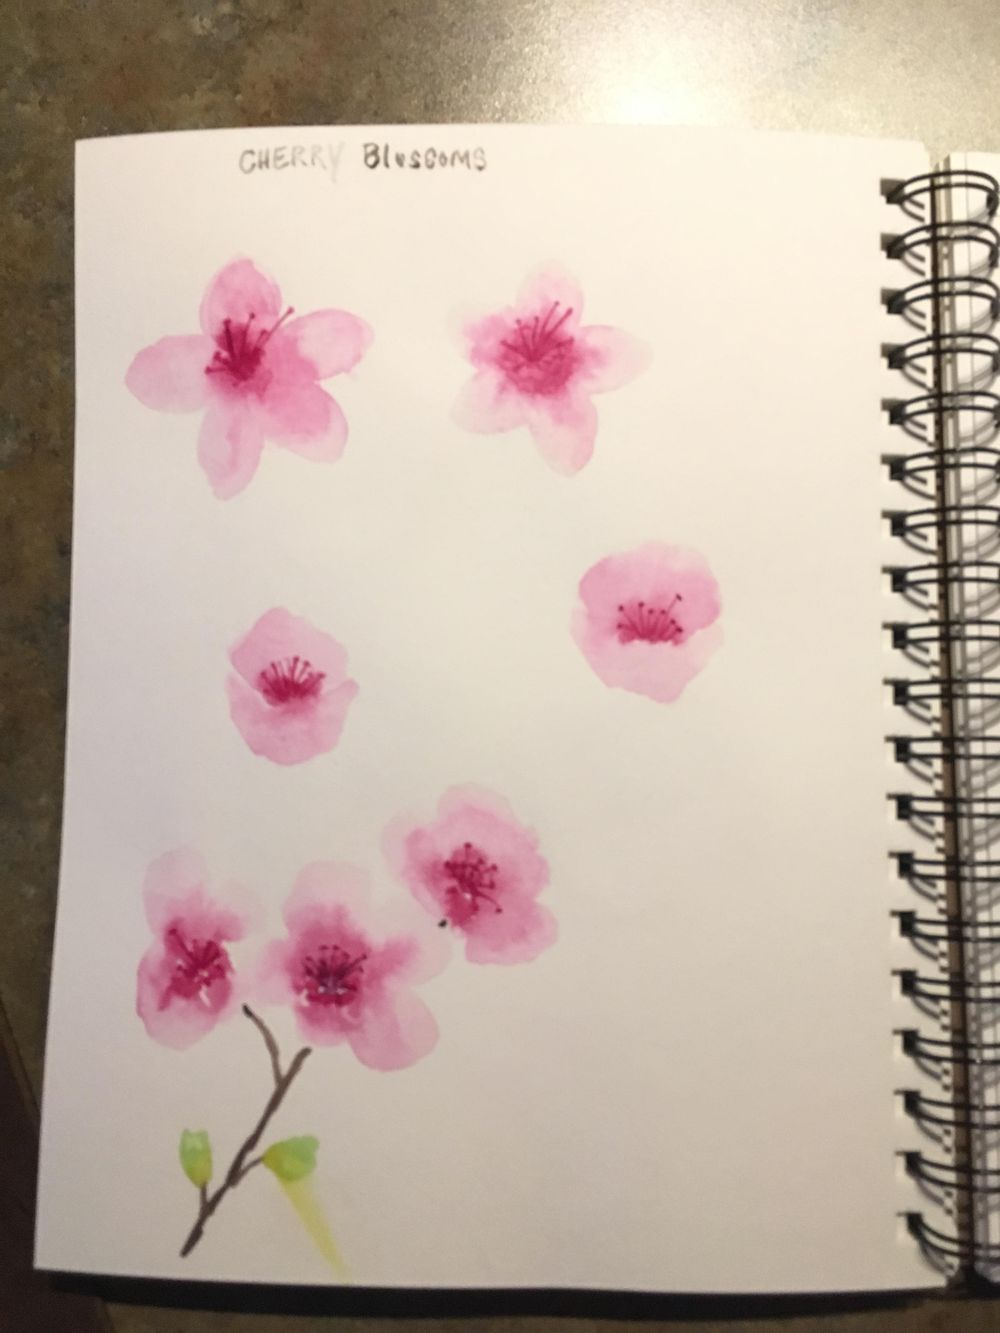 Loose Florals - image 6 - student project